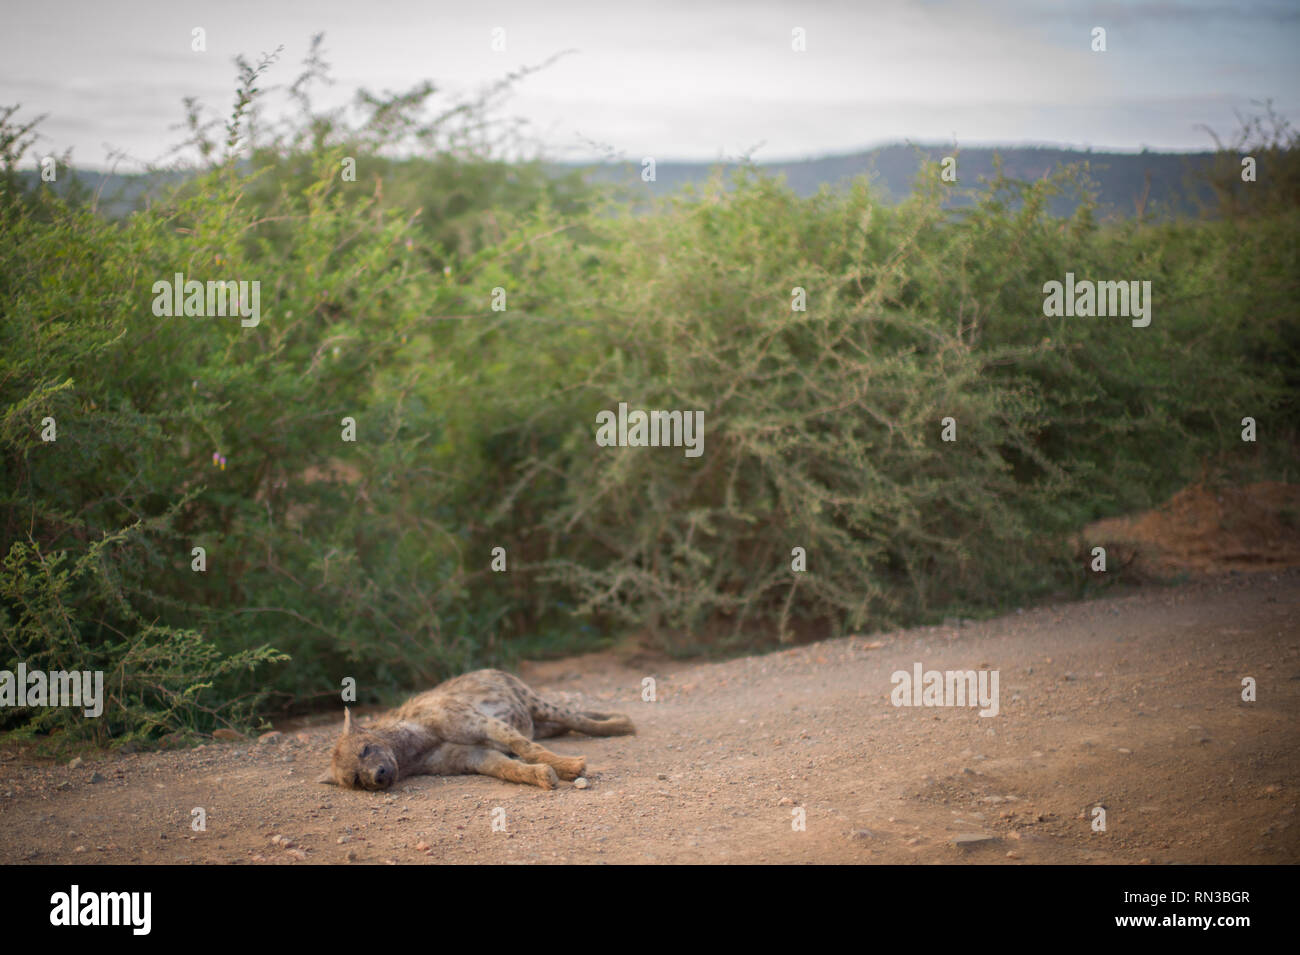 A spotted hyena naps on a gravel road in Madikwe Game Reserve, North West Province, South Africa. - Stock Image